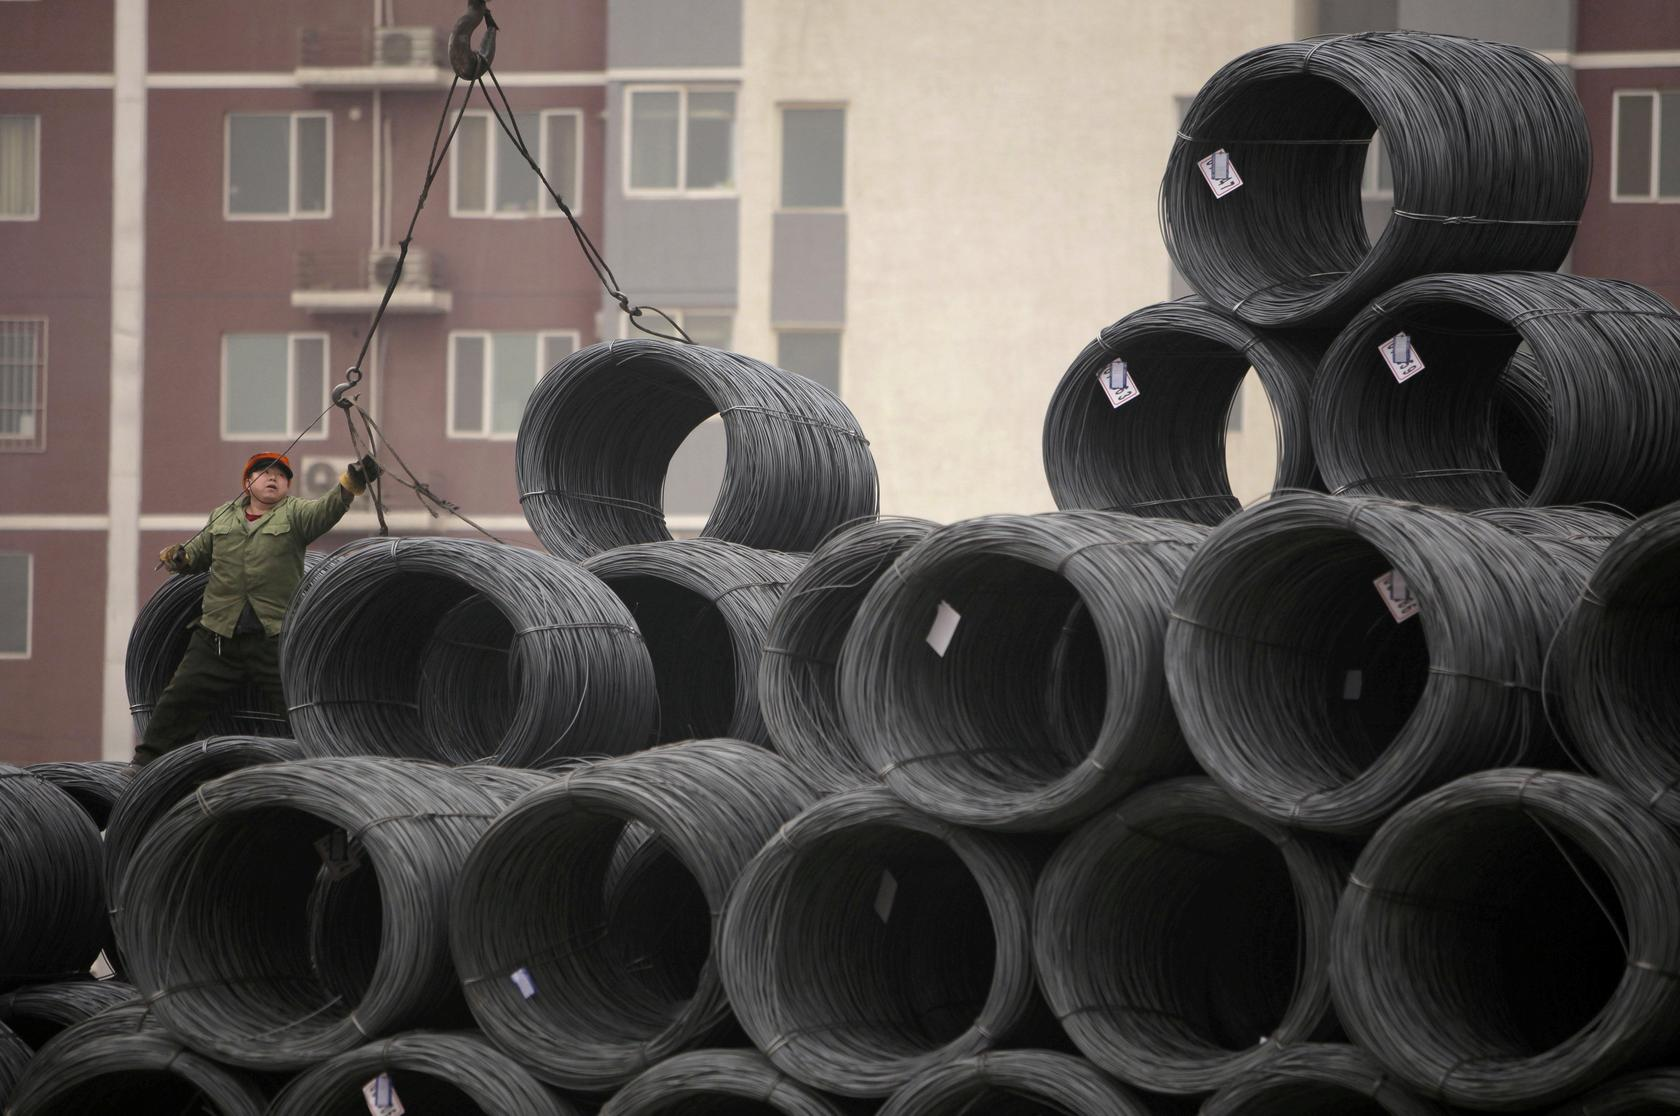 Fear factor: China steel exporters delay shipments, giving